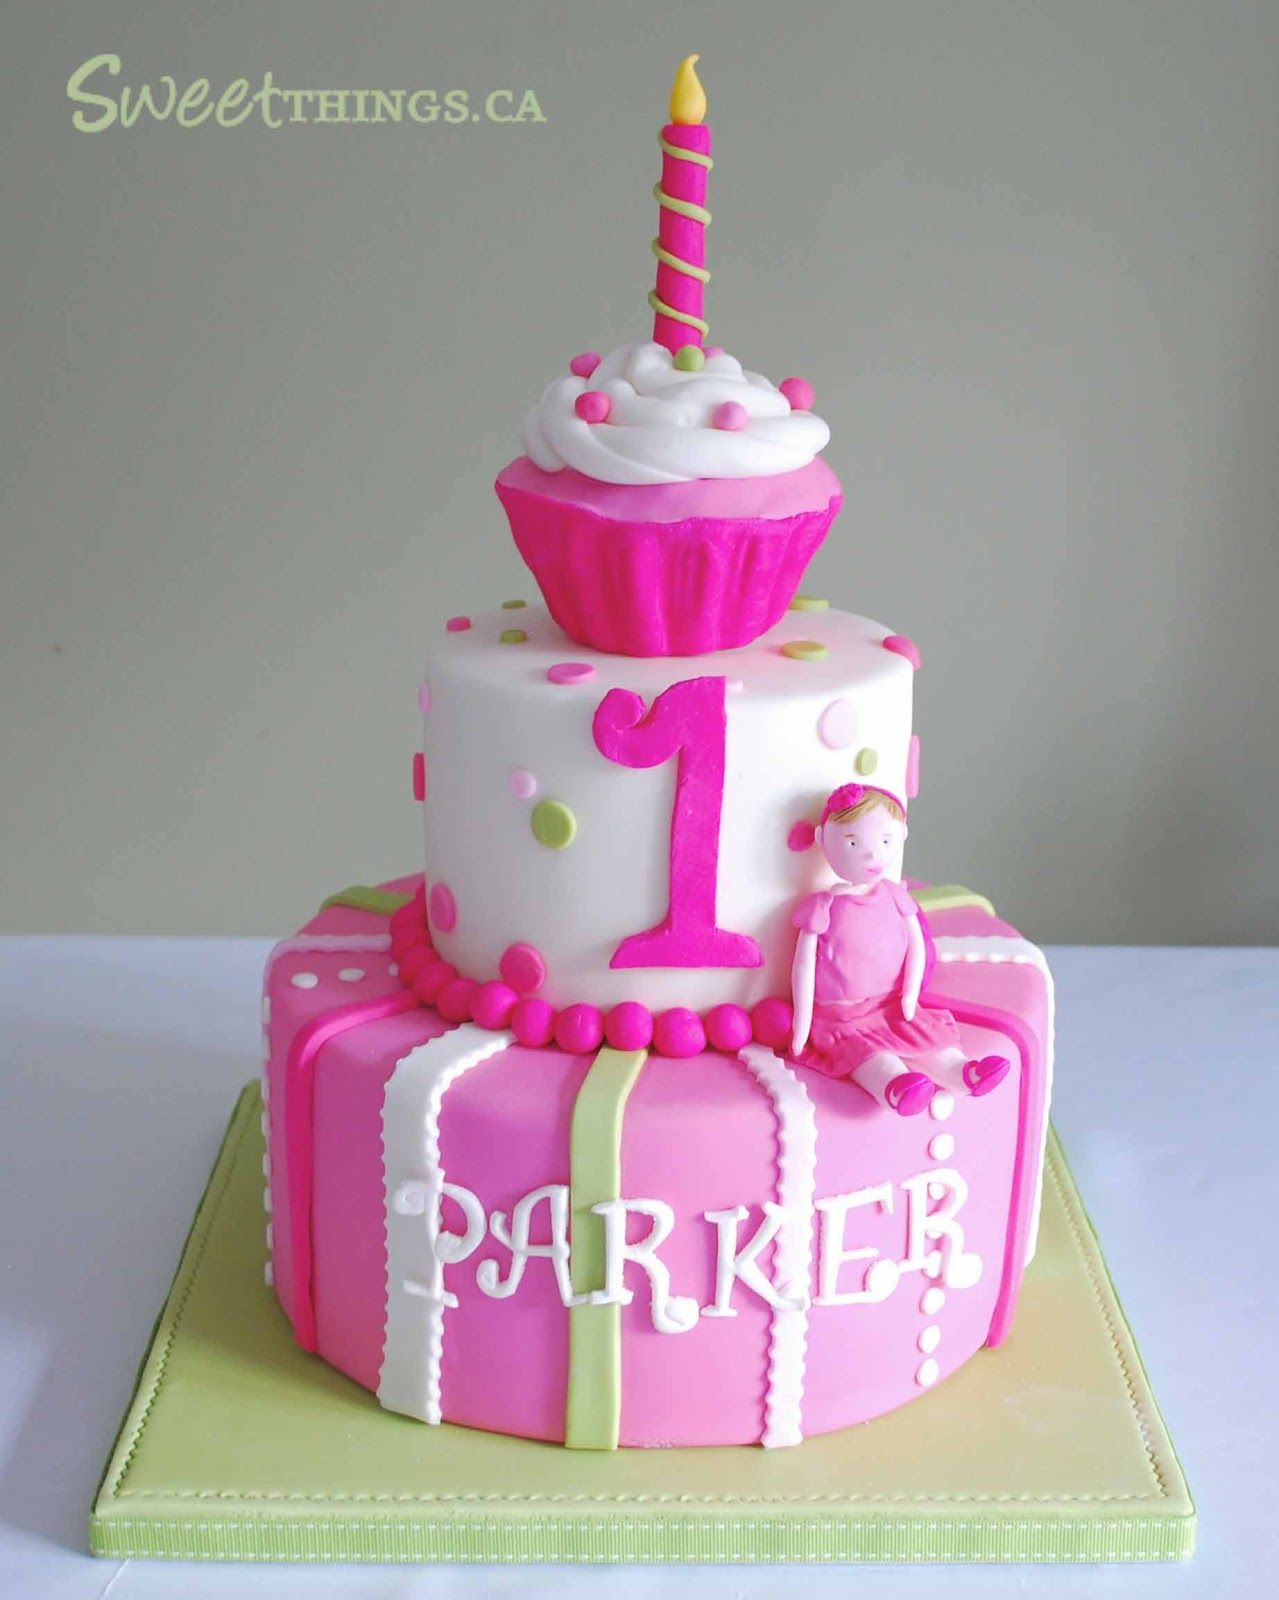 BABY GIRL TWO TIER BIRHTDAY CAKES is another view of the cake